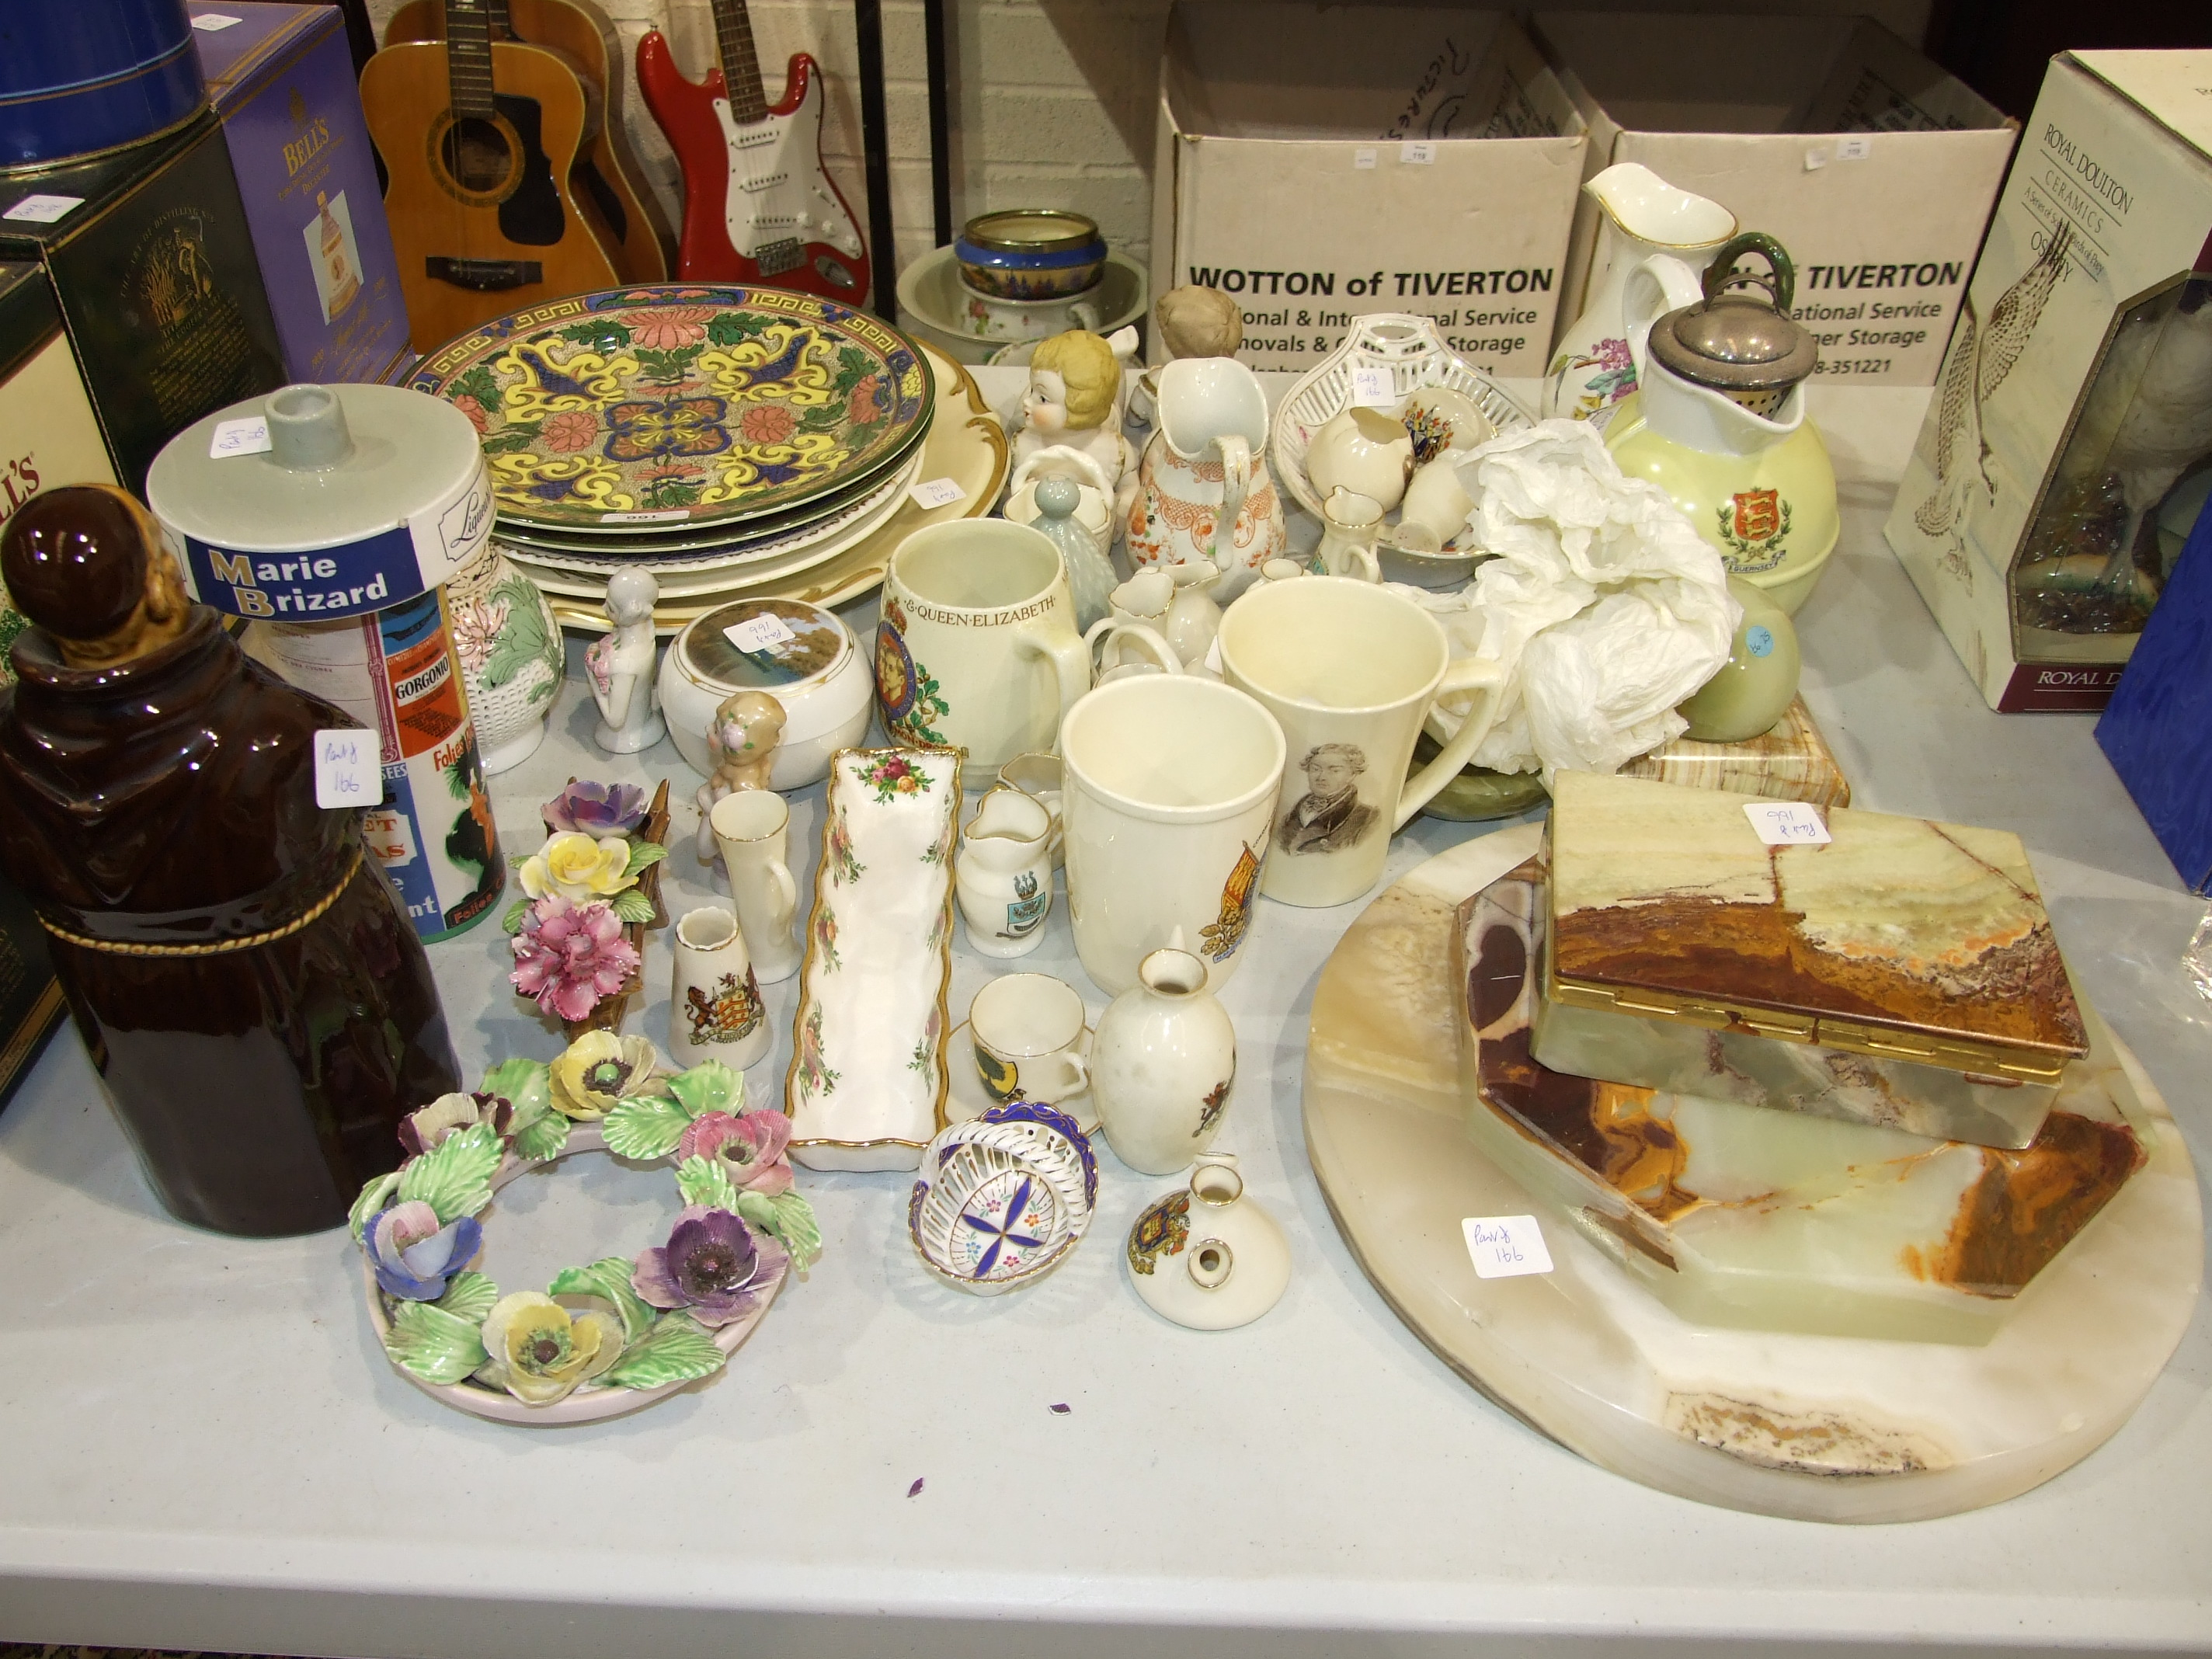 Lot 166 - A collection of miscellaneous ceramics, a blue-glazed plant stand and other items.